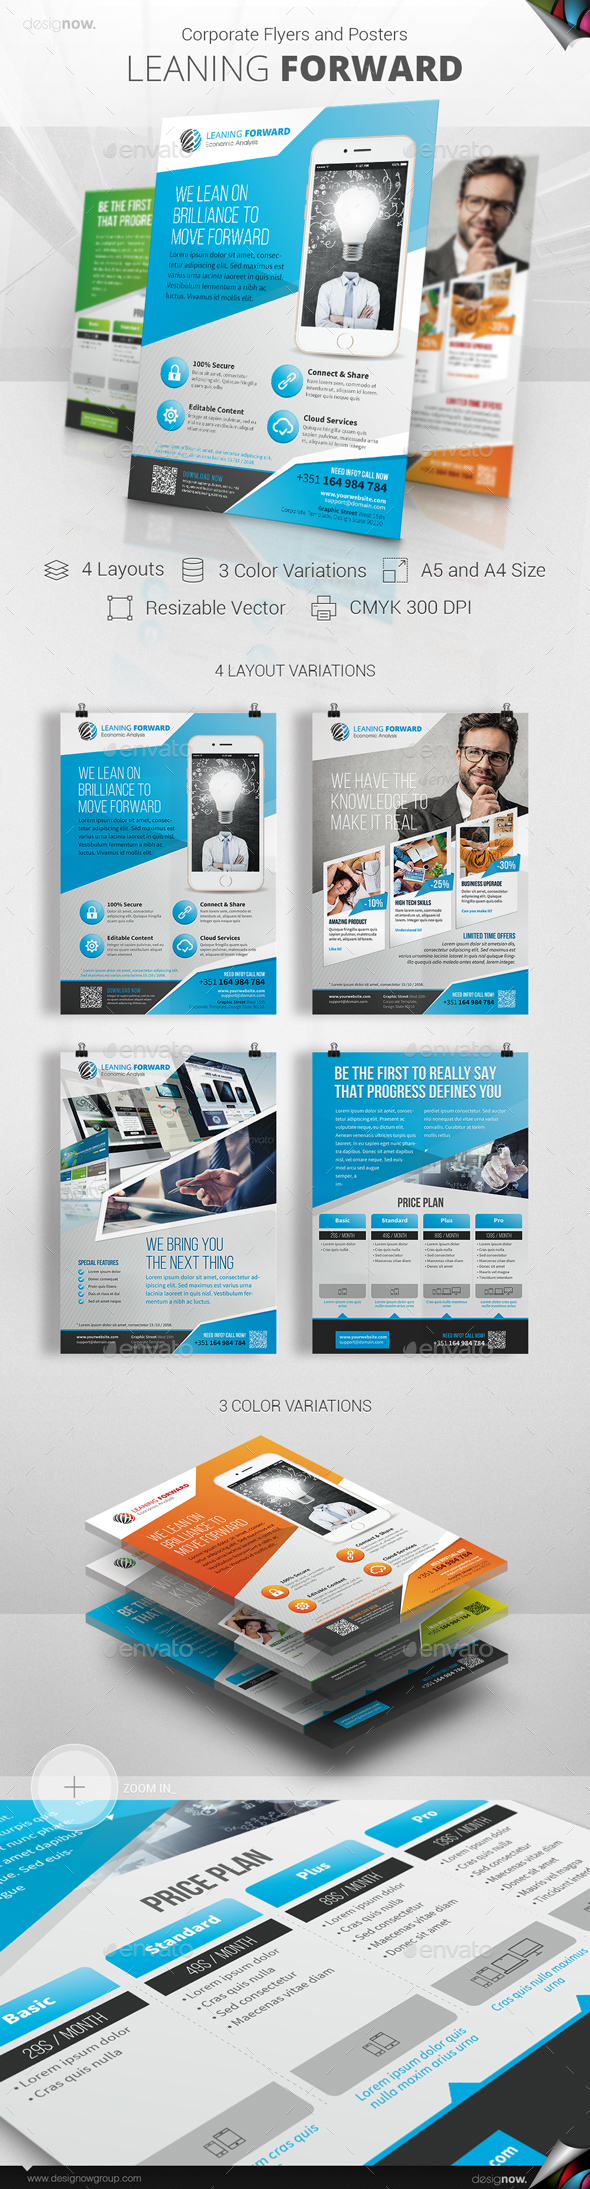 Flyer and Poster - Leaning Forward - Corporate Flyers